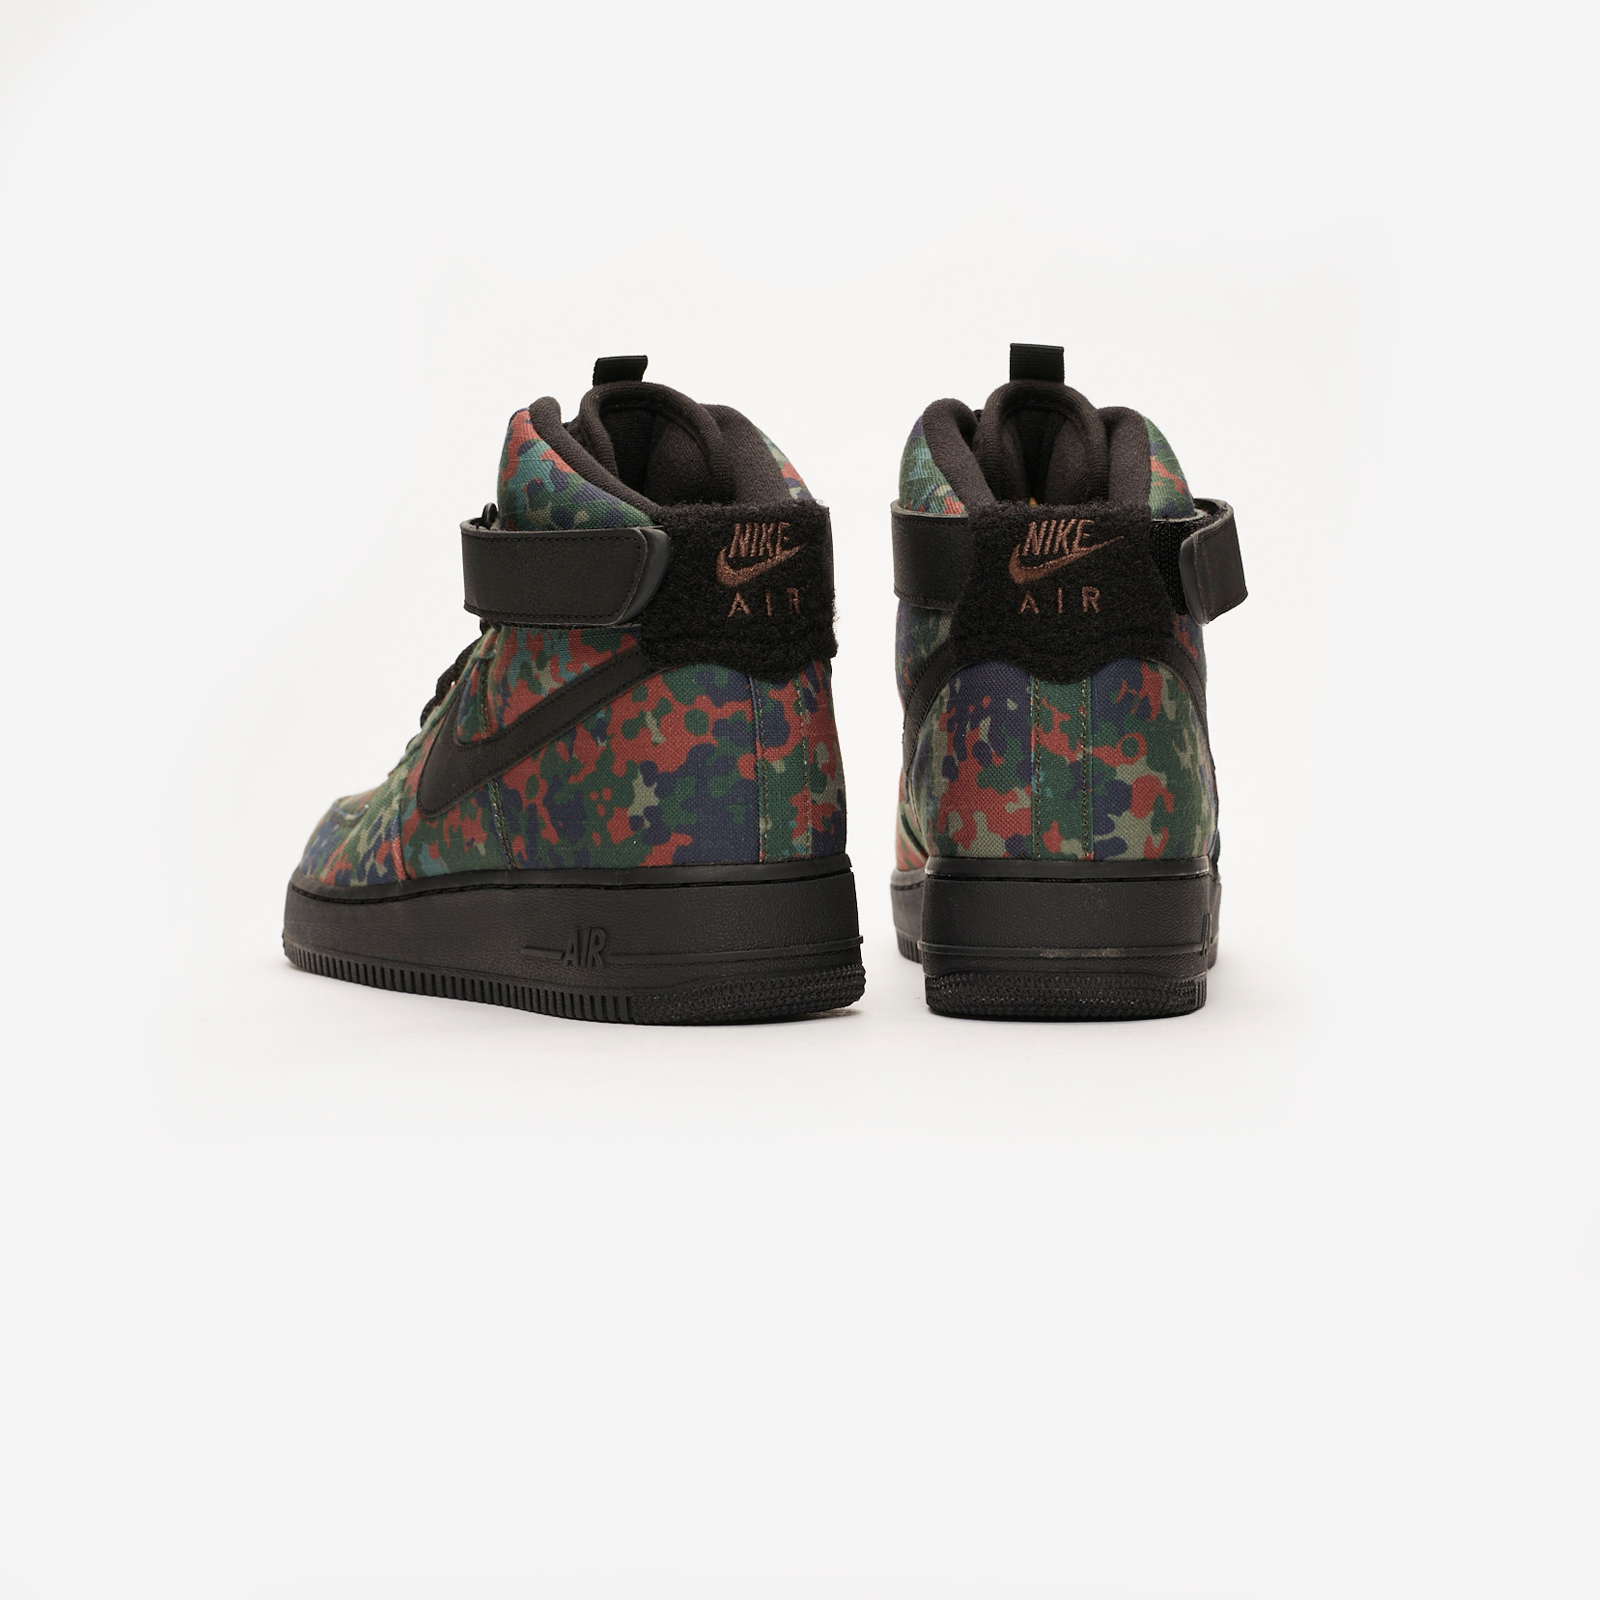 Women Stylish Nike Air Force 1 07 LV8 Shoes Camou Women